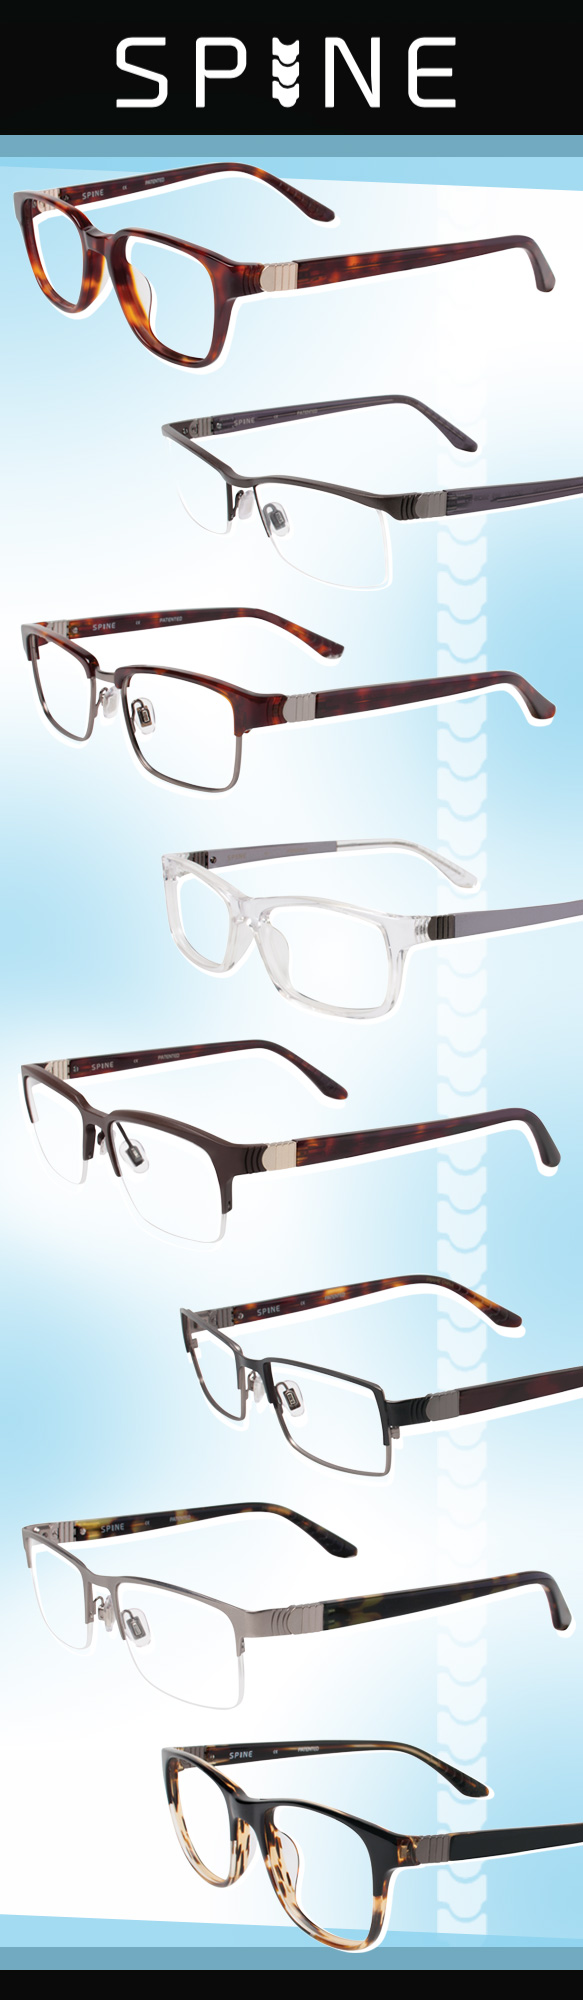 SPINE Eyewear (SP1003), SPINE Eyewear (SP2007), SPINE Eyewear (SP2006), SPINE Eyewear (SP1001), SPINE Eyewear (SP2003), SPINE Eyewear (SP2002), SPINE Eyewear (SP2004), SPINE Eyewear (SP1002)